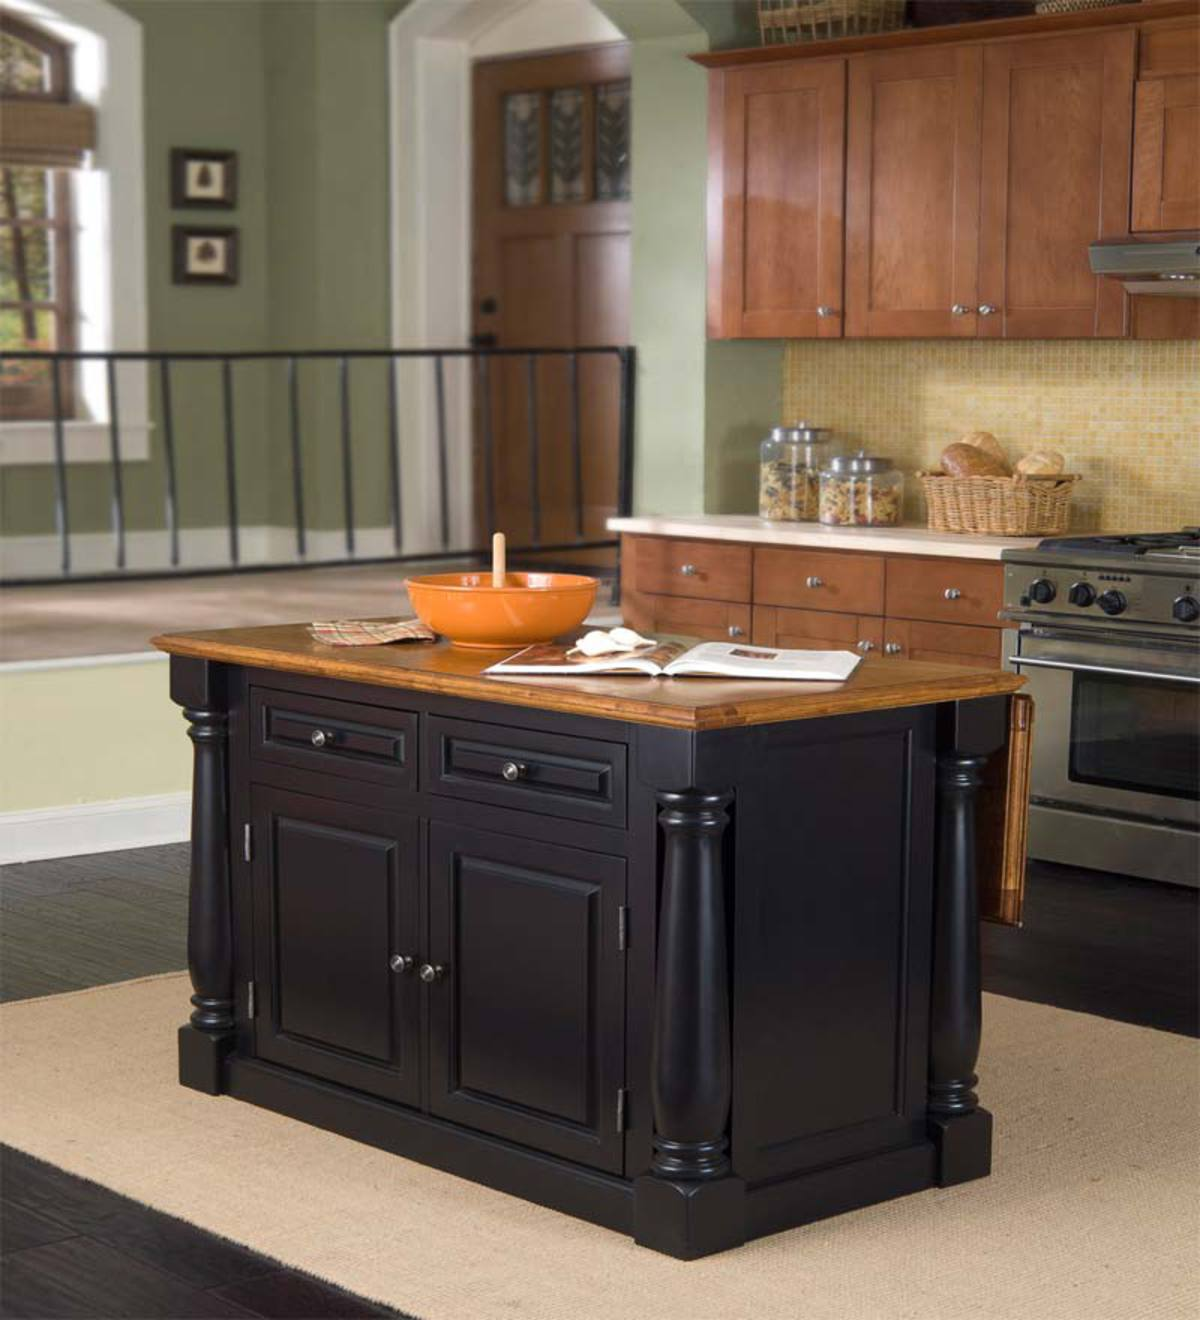 Kitchen Island In Black And Distressed Oak Veneer With